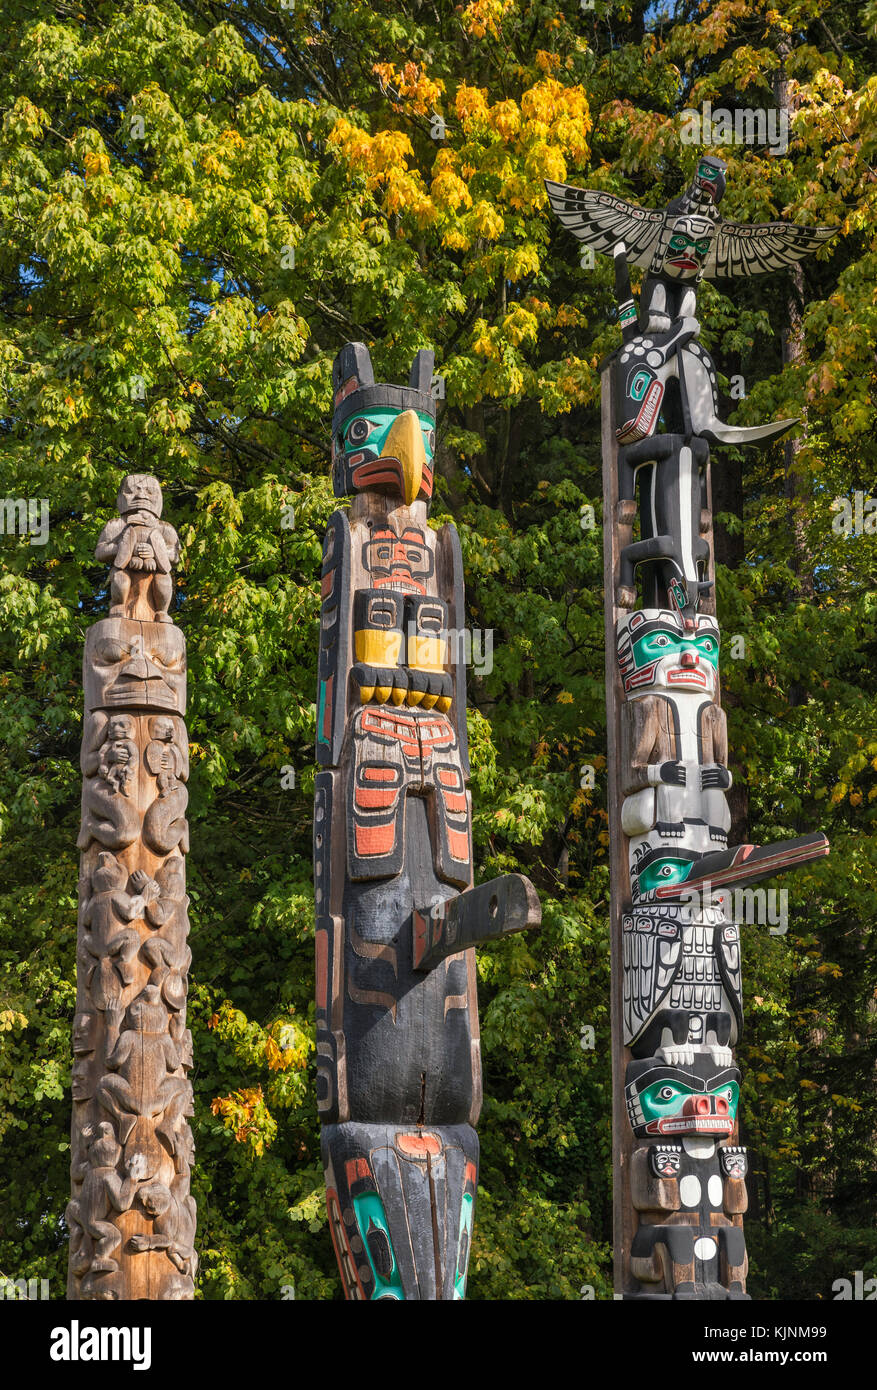 Totem poles at Stanley Park in Vancouver, British Columbia, Canada - Stock Image